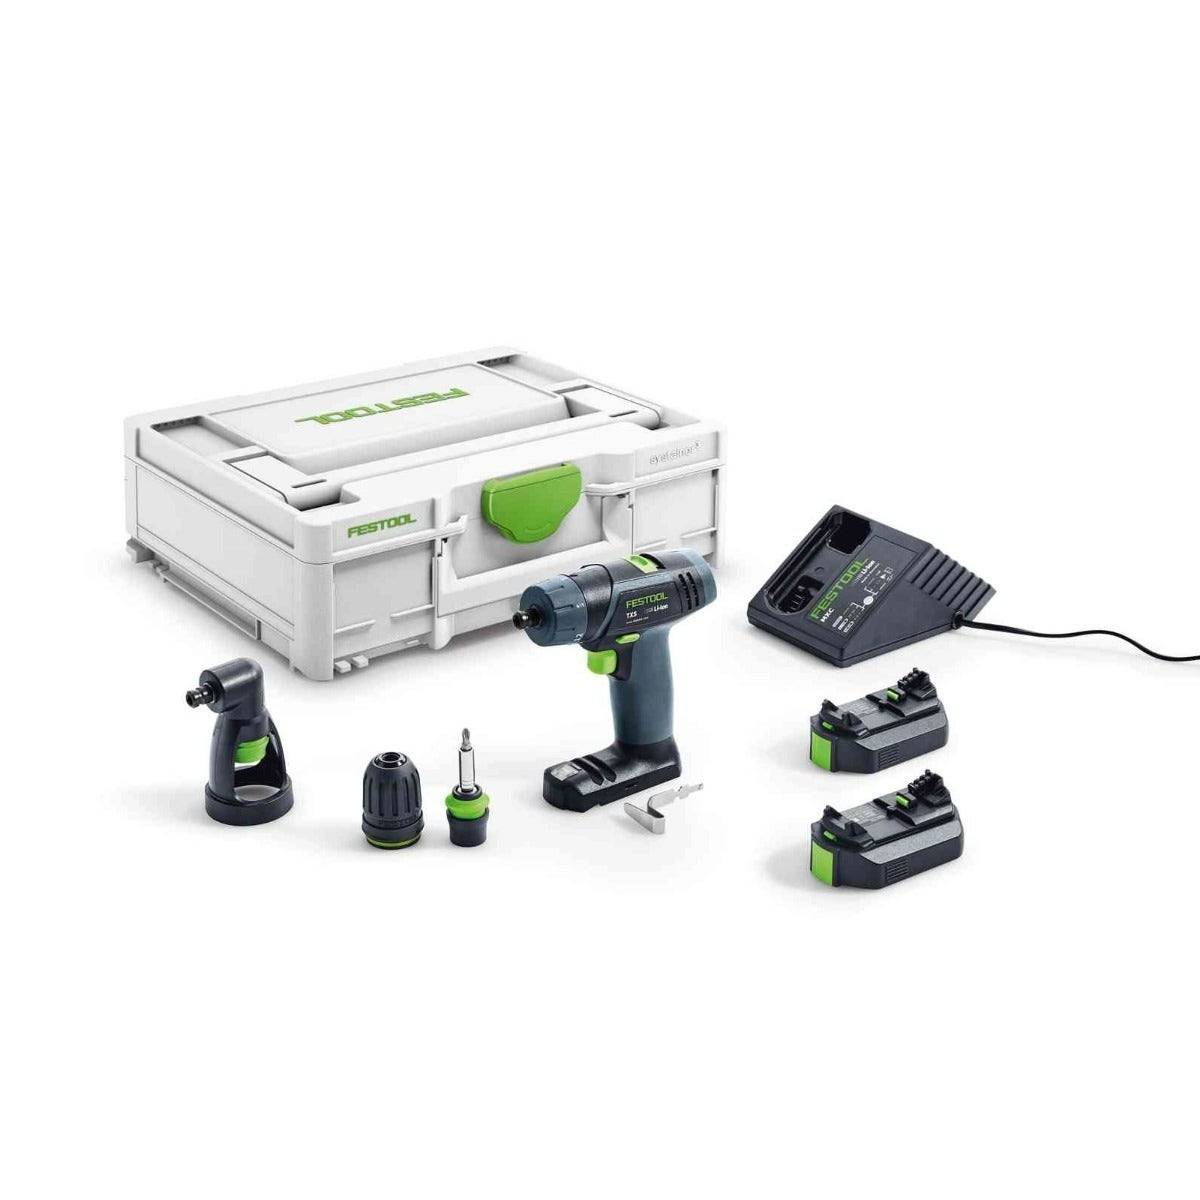 Festool Perceuse-visseuse sans fil TXS Set + 2 batteries 2.6Ah + chargeur + renvoi d'angle + systainer